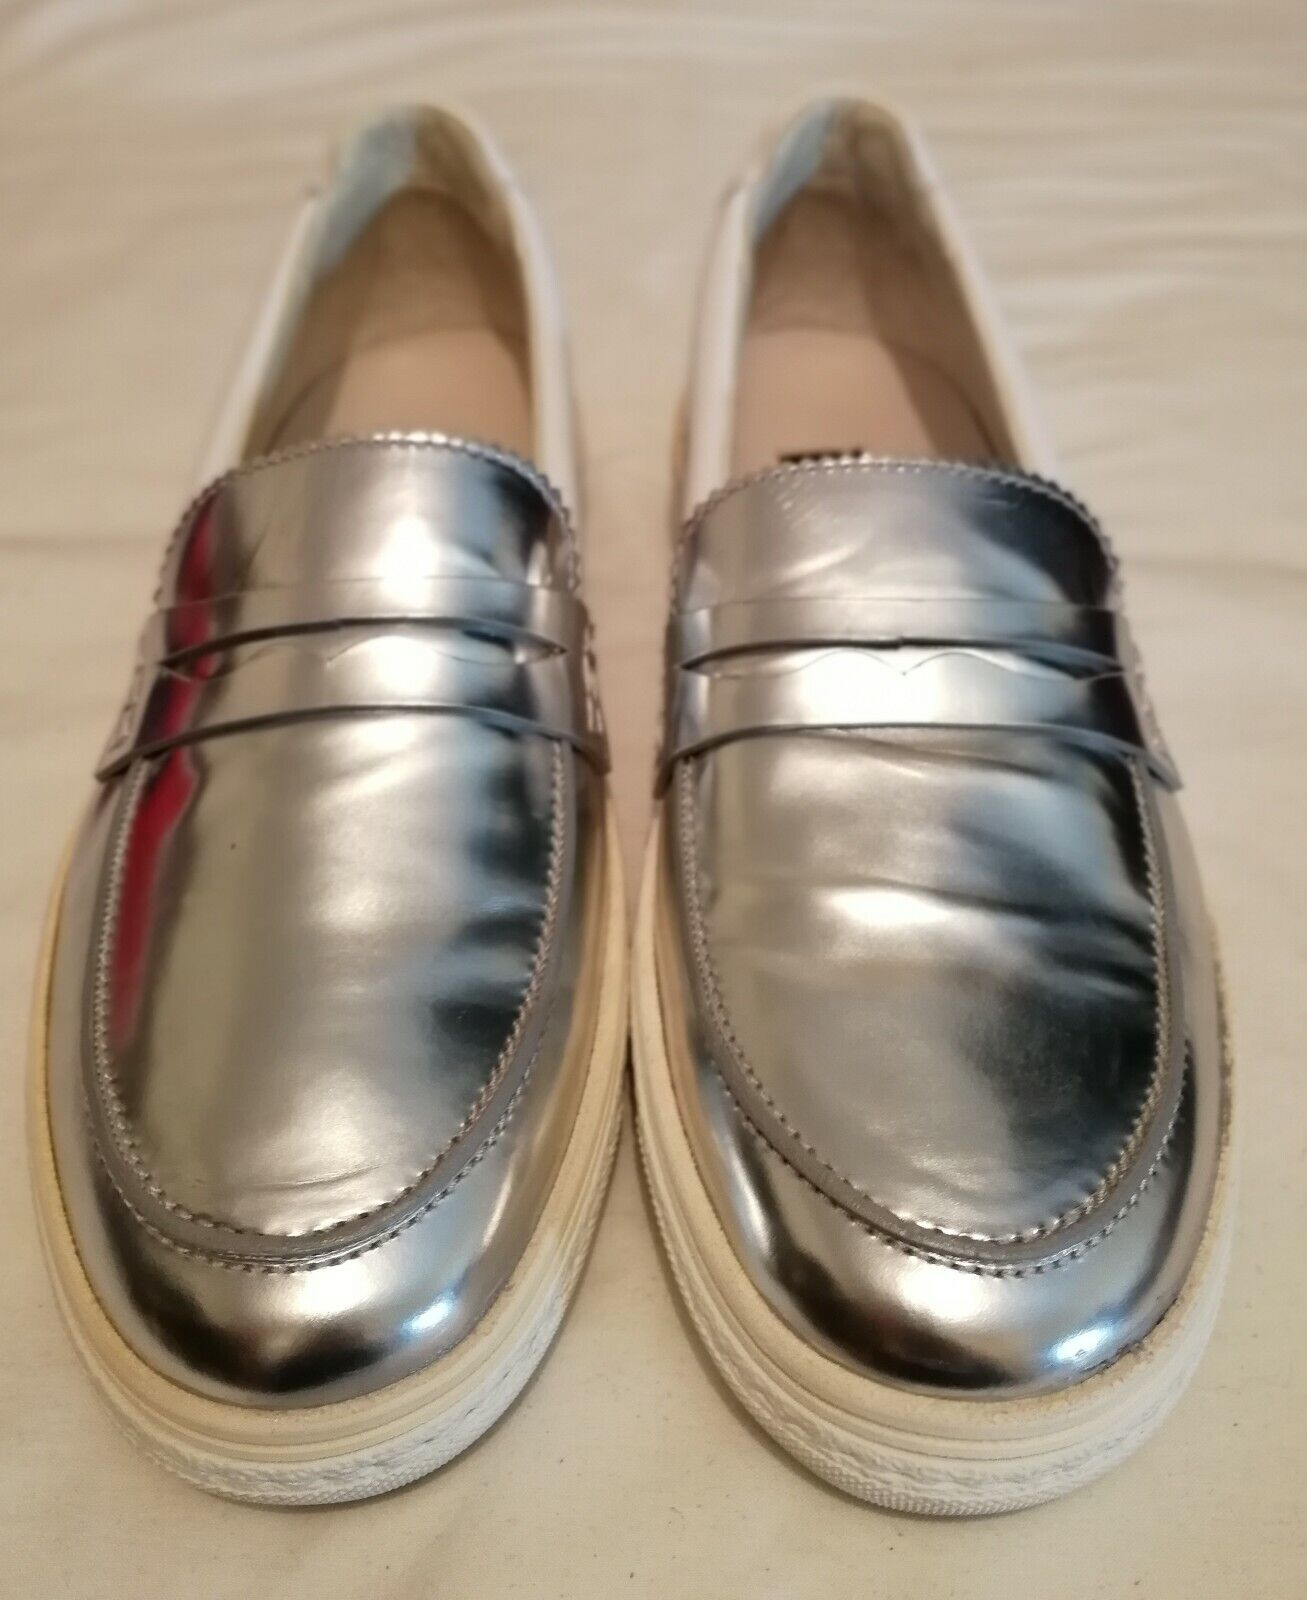 No 21 Leather Penny Loafer Sneakers shoes White Size uk 7 eu 40